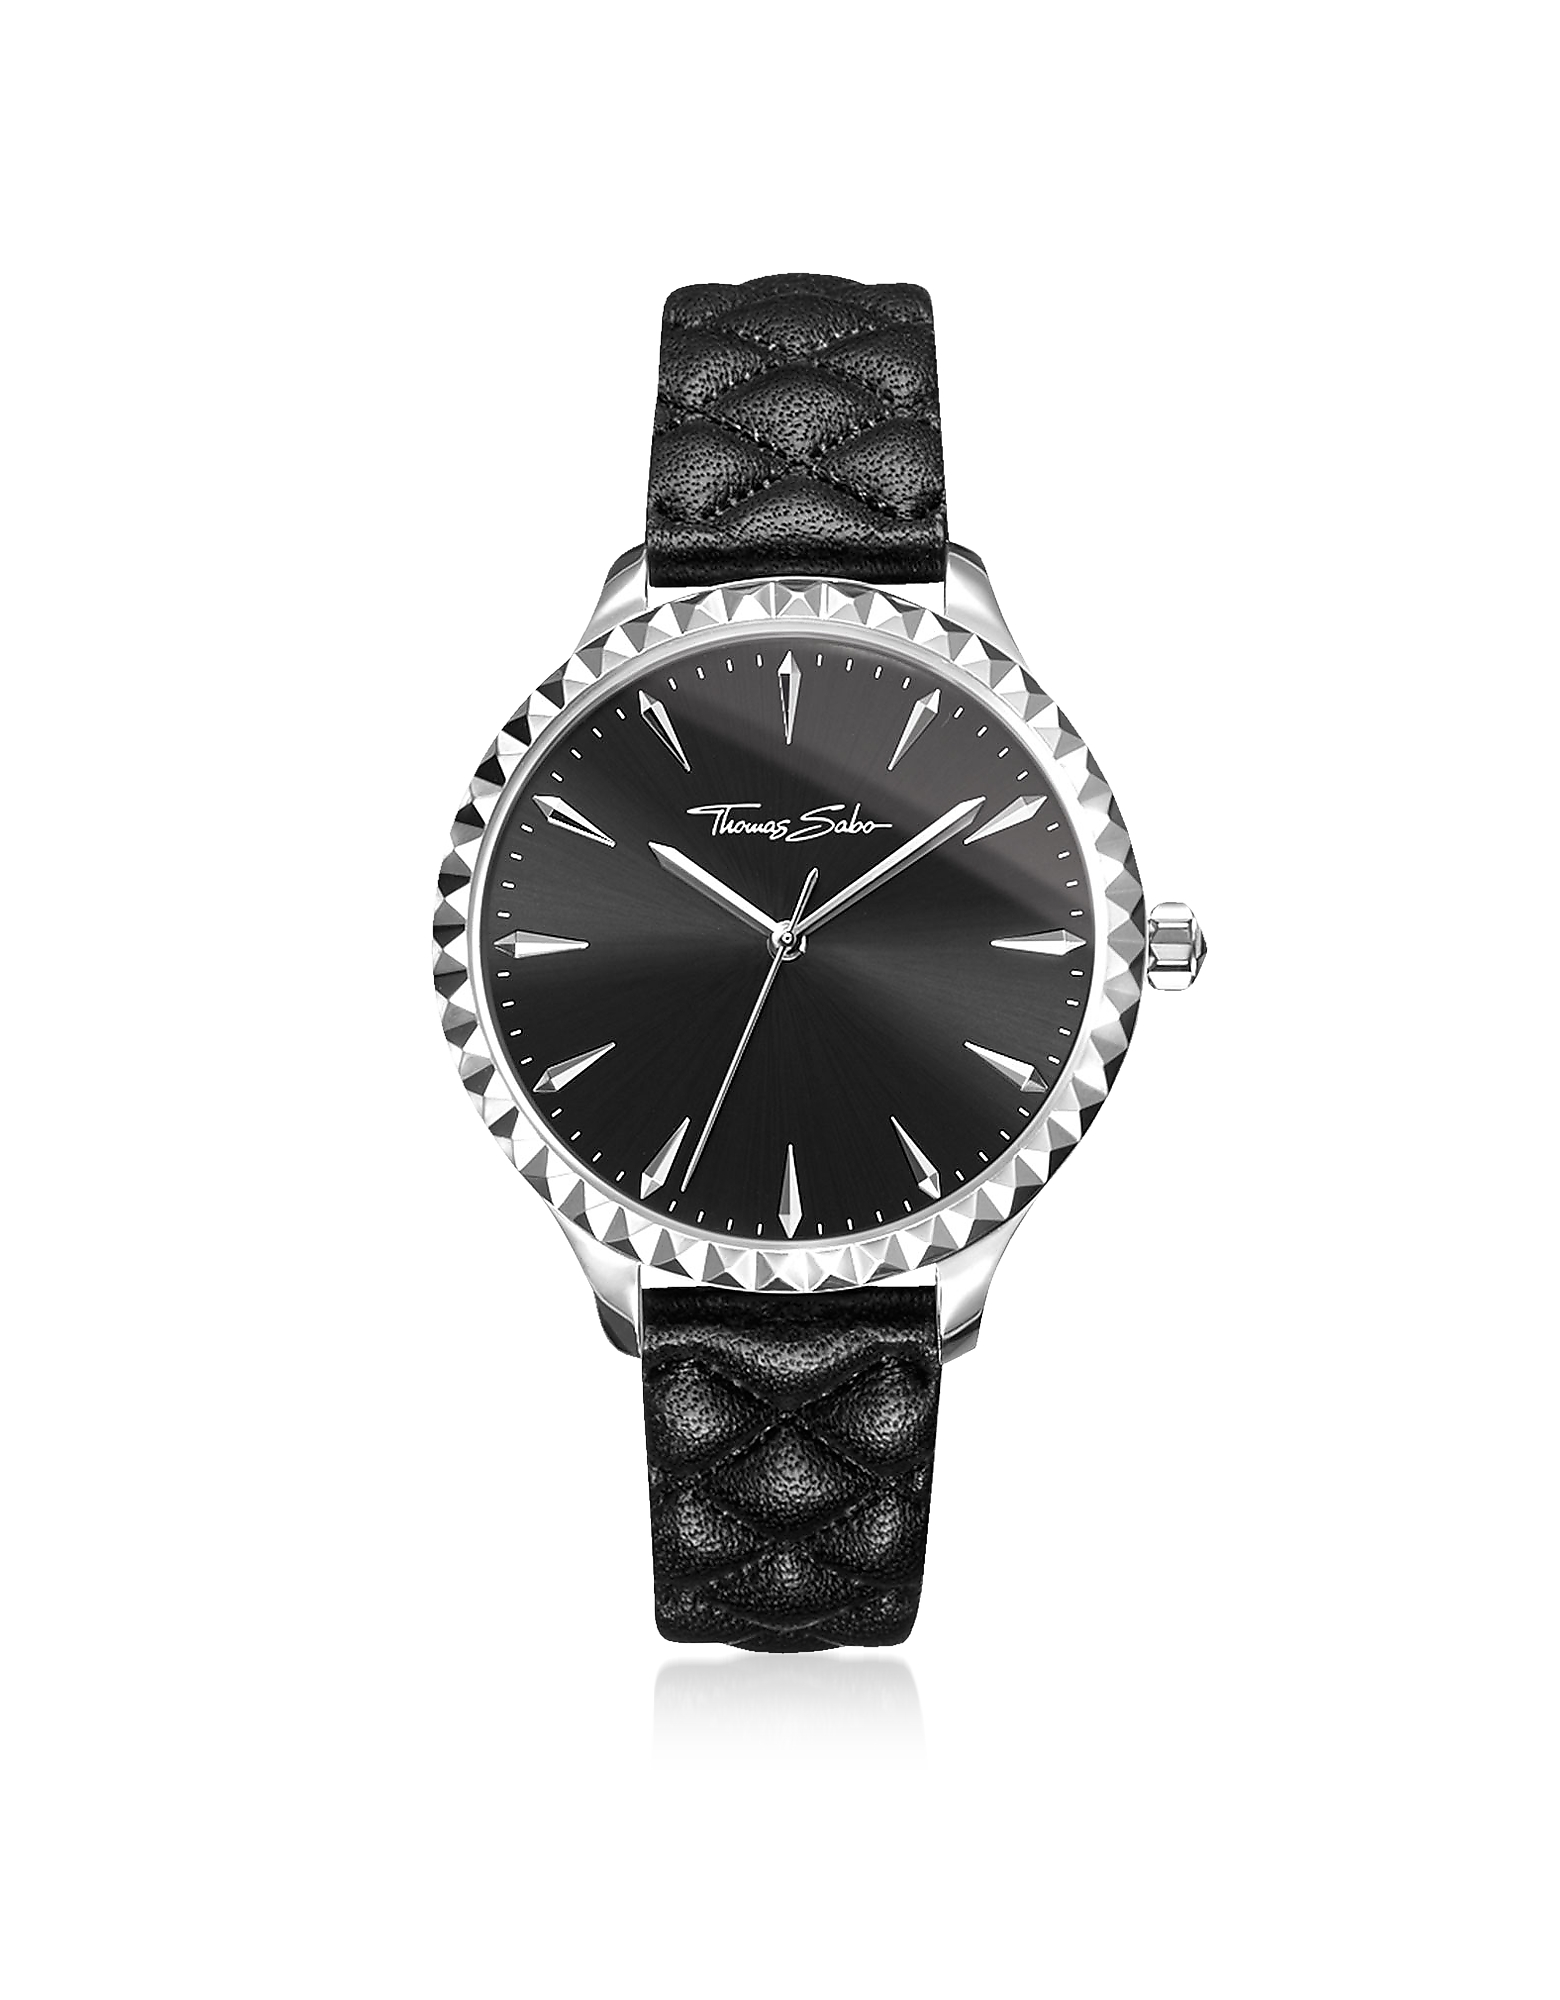 Rebel at Heart Silver Stainless Steel and Black Quilted Leather Strap Women's Watch w/Black Dial